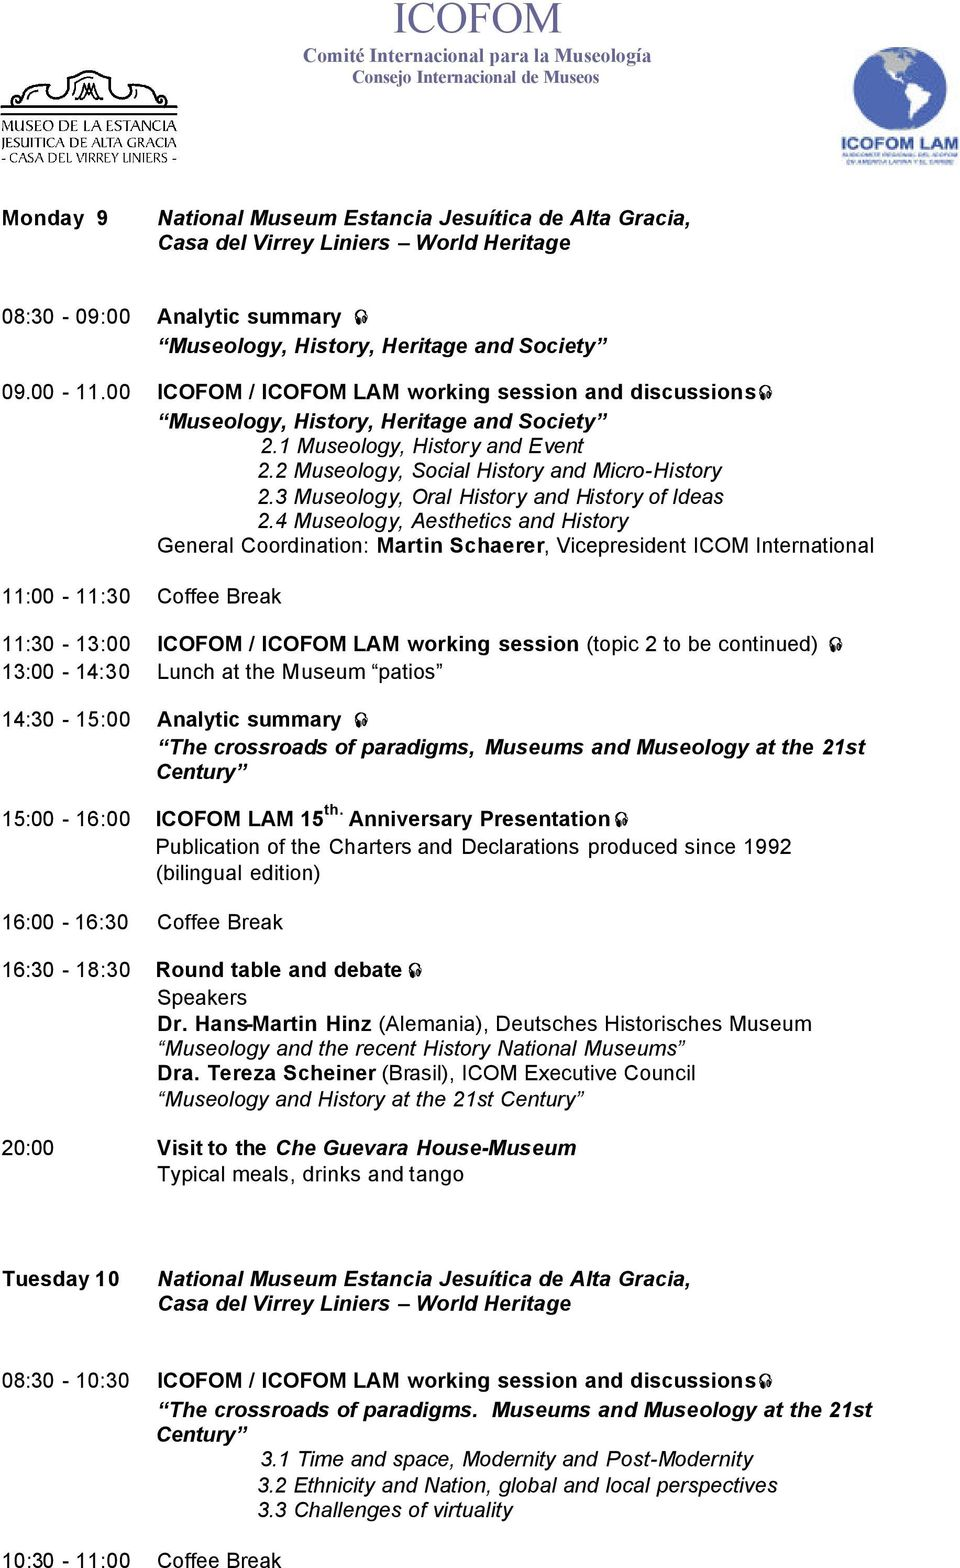 4 Museology, Aesthetics and History General Coordination: Martin Schaerer, Vicepresident ICOM International 11:00-11:30 Coffee Break 11:30-13:00 ICOFOM / ICOFOM LAM working session (topic 2 to be